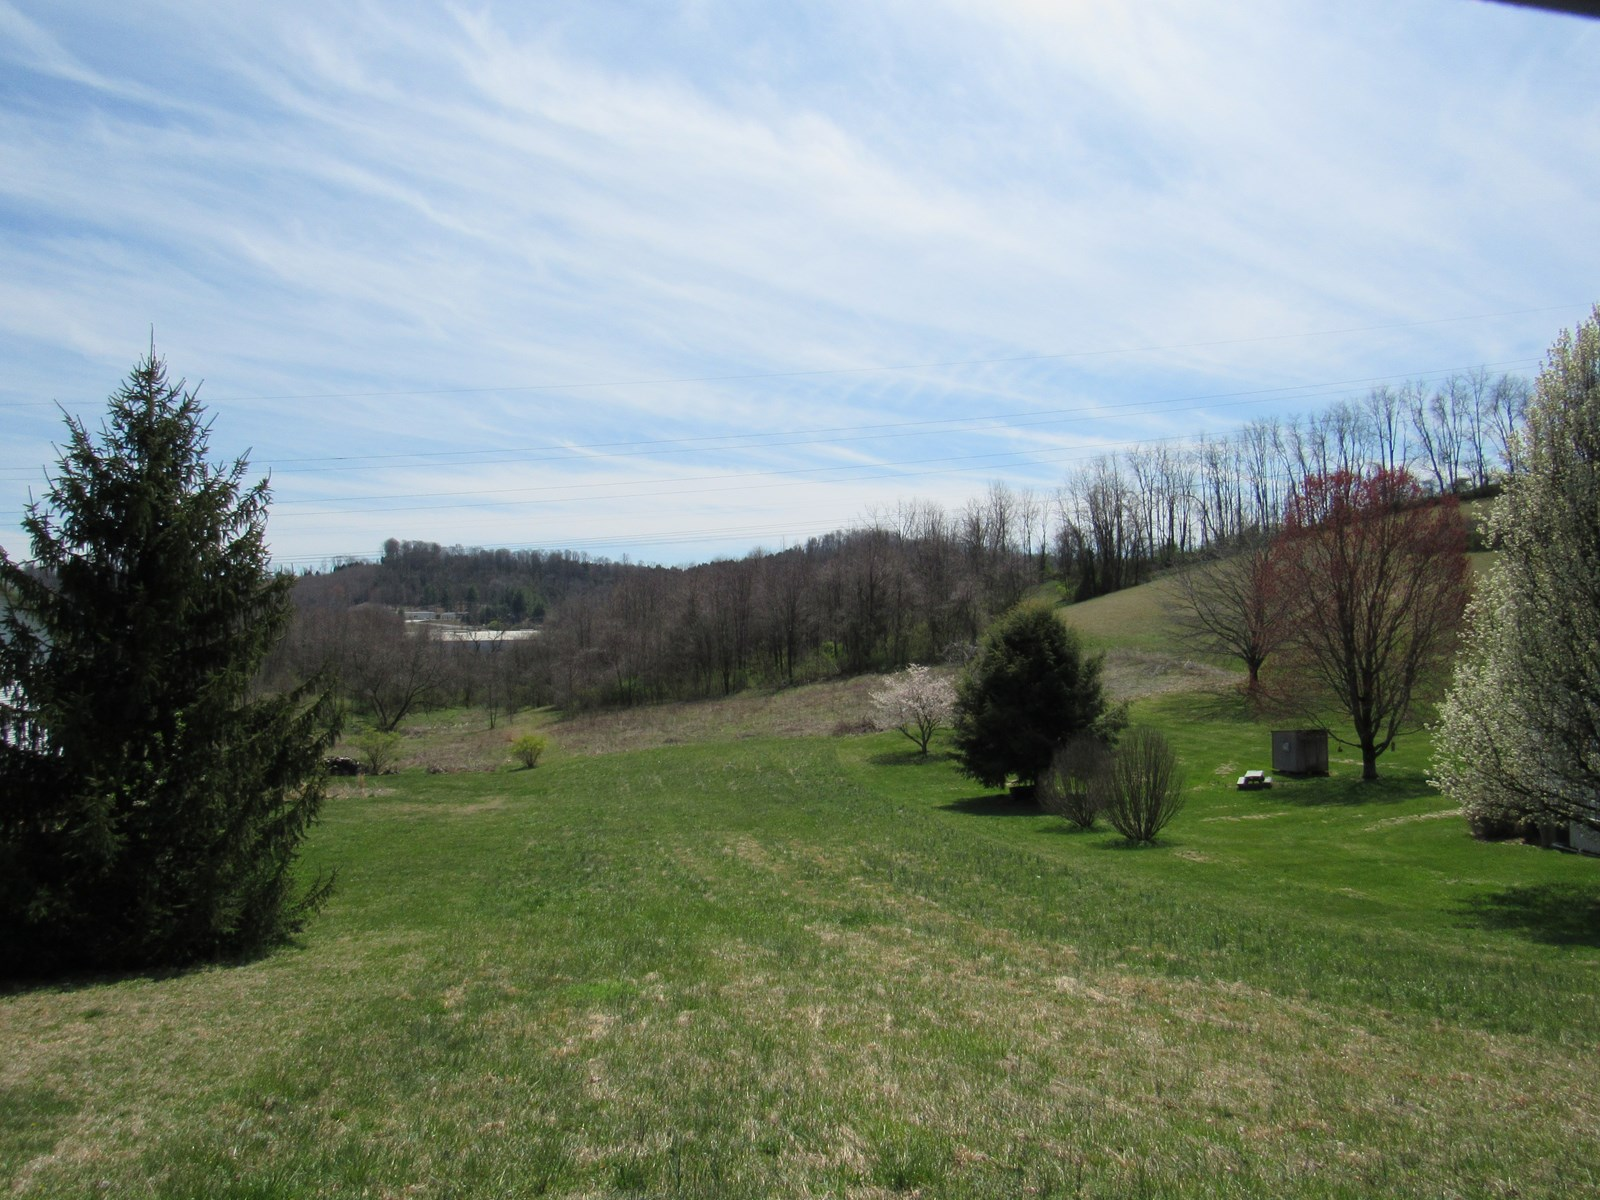 Flat, Cleared Building Site For Sale In Bristol VA